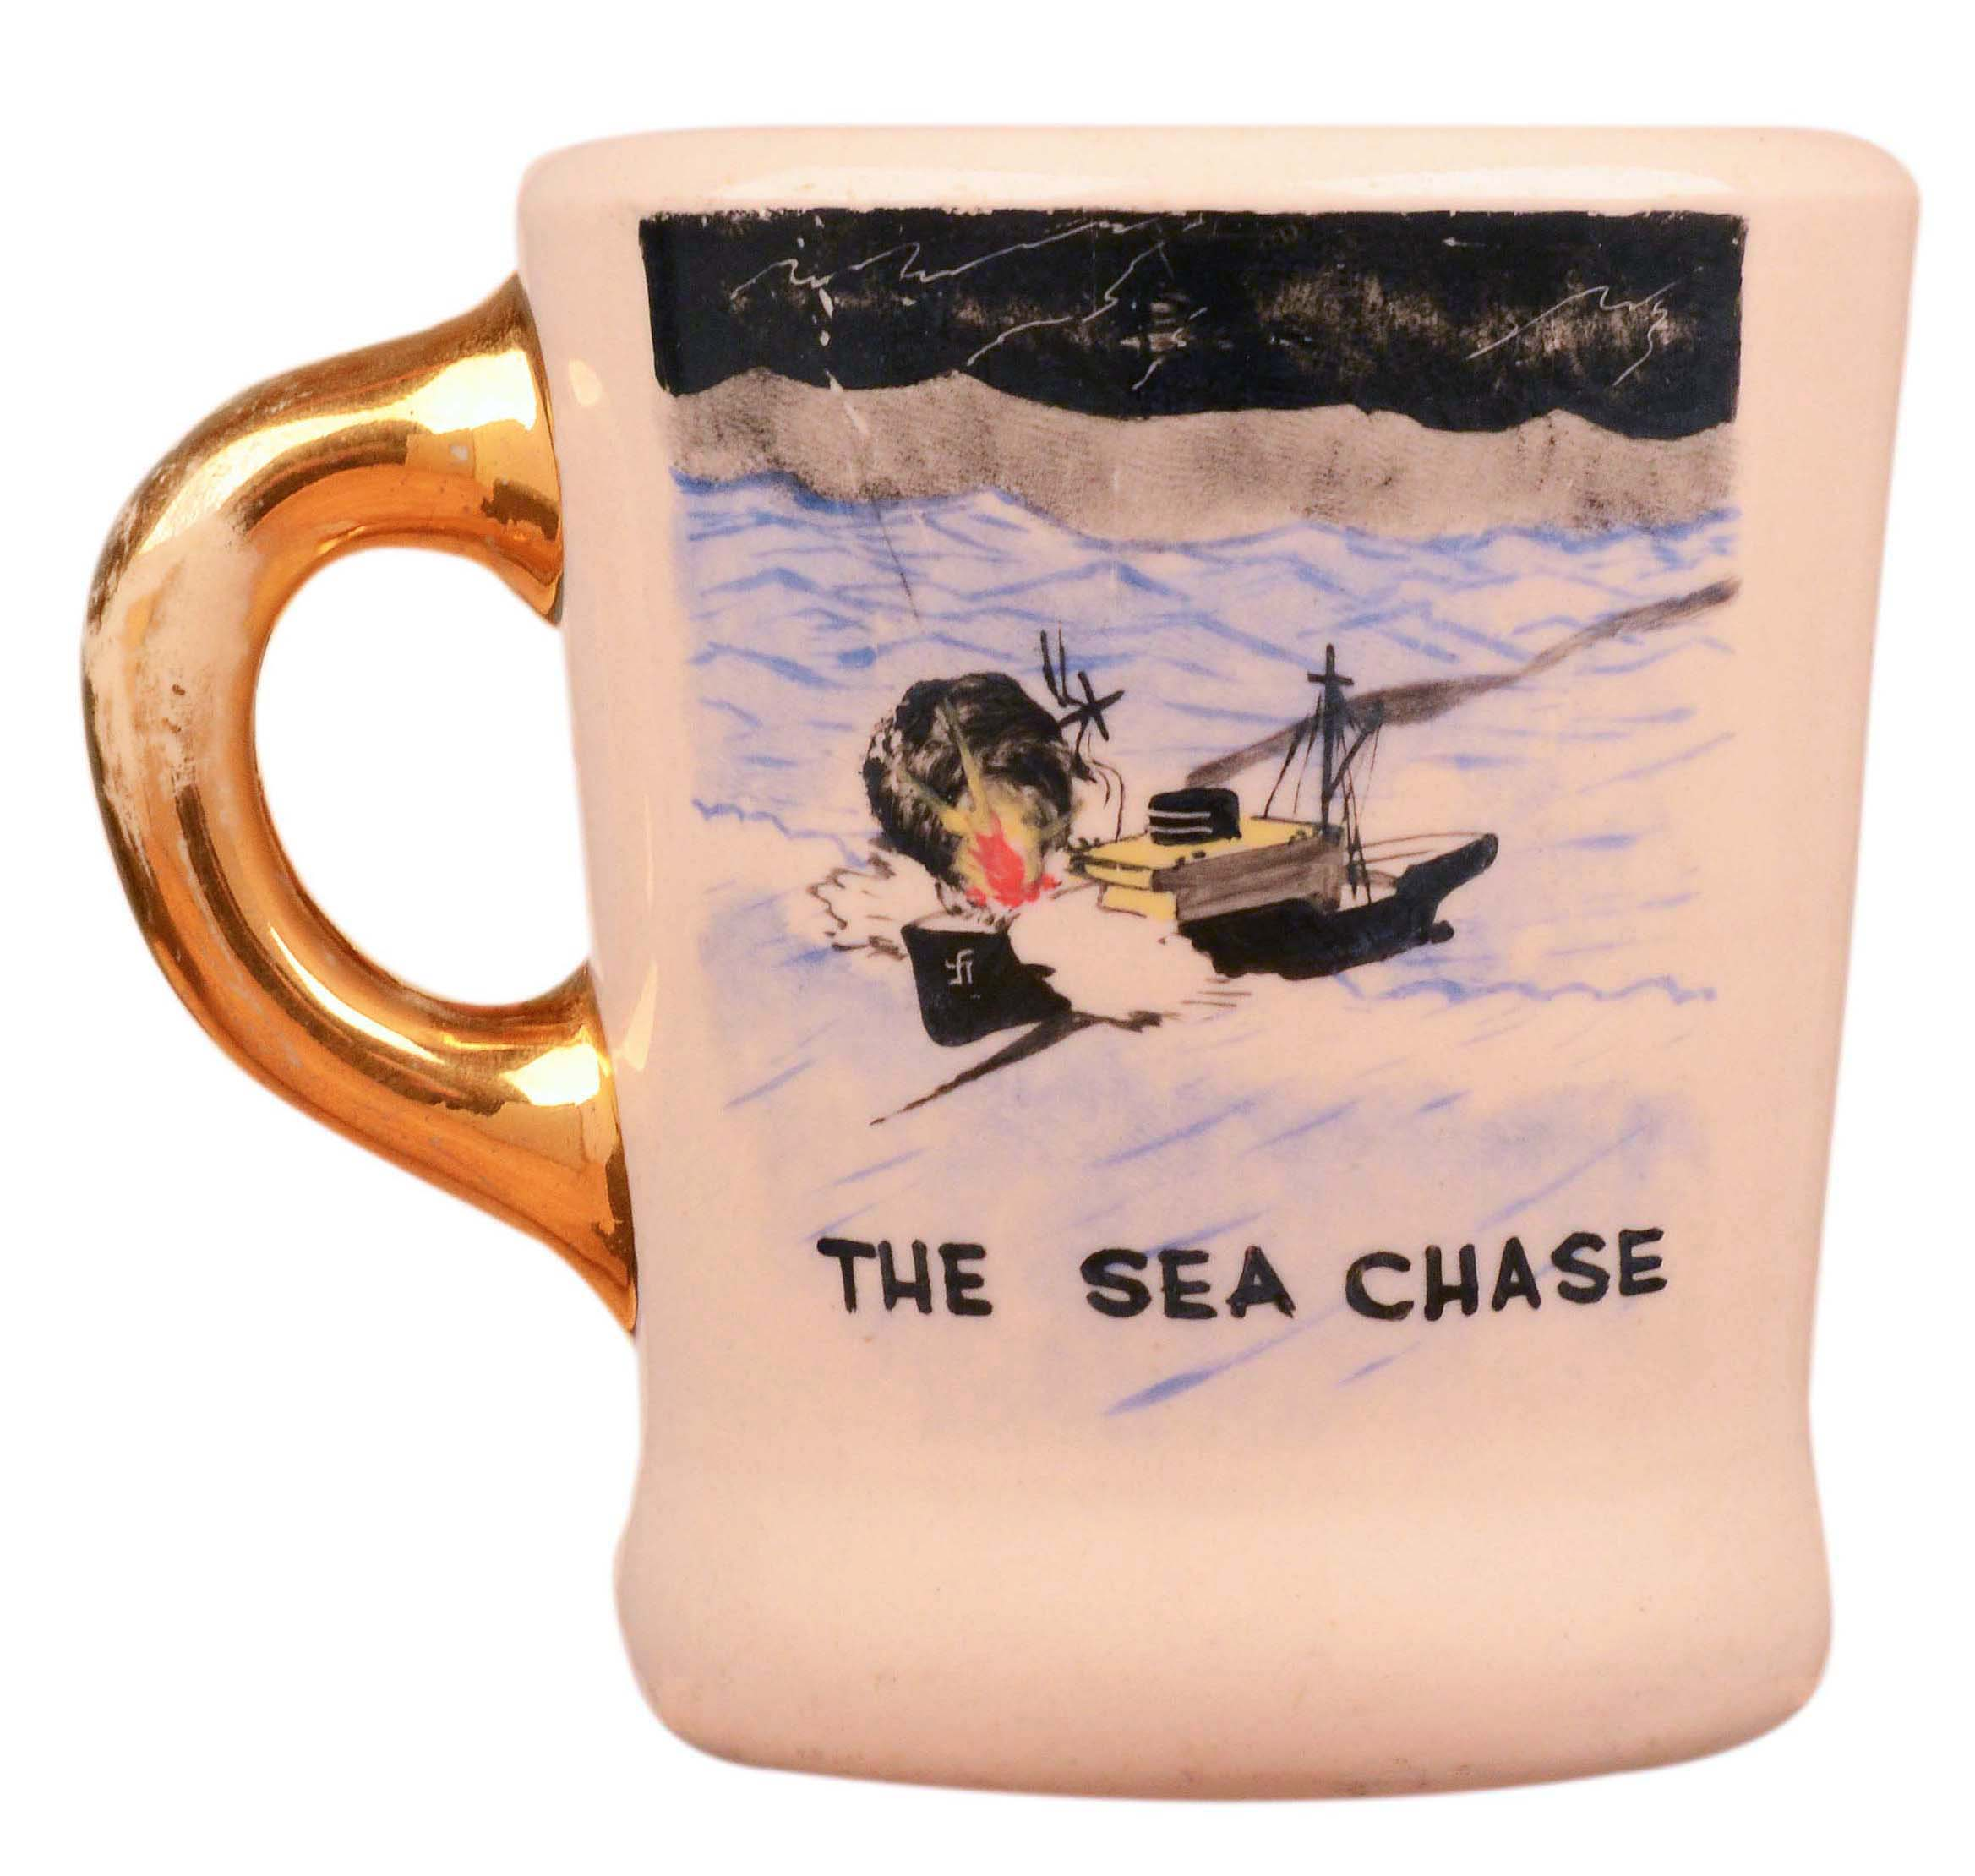 John Wayne mug for the 1955 movie The Sea Chase, front.